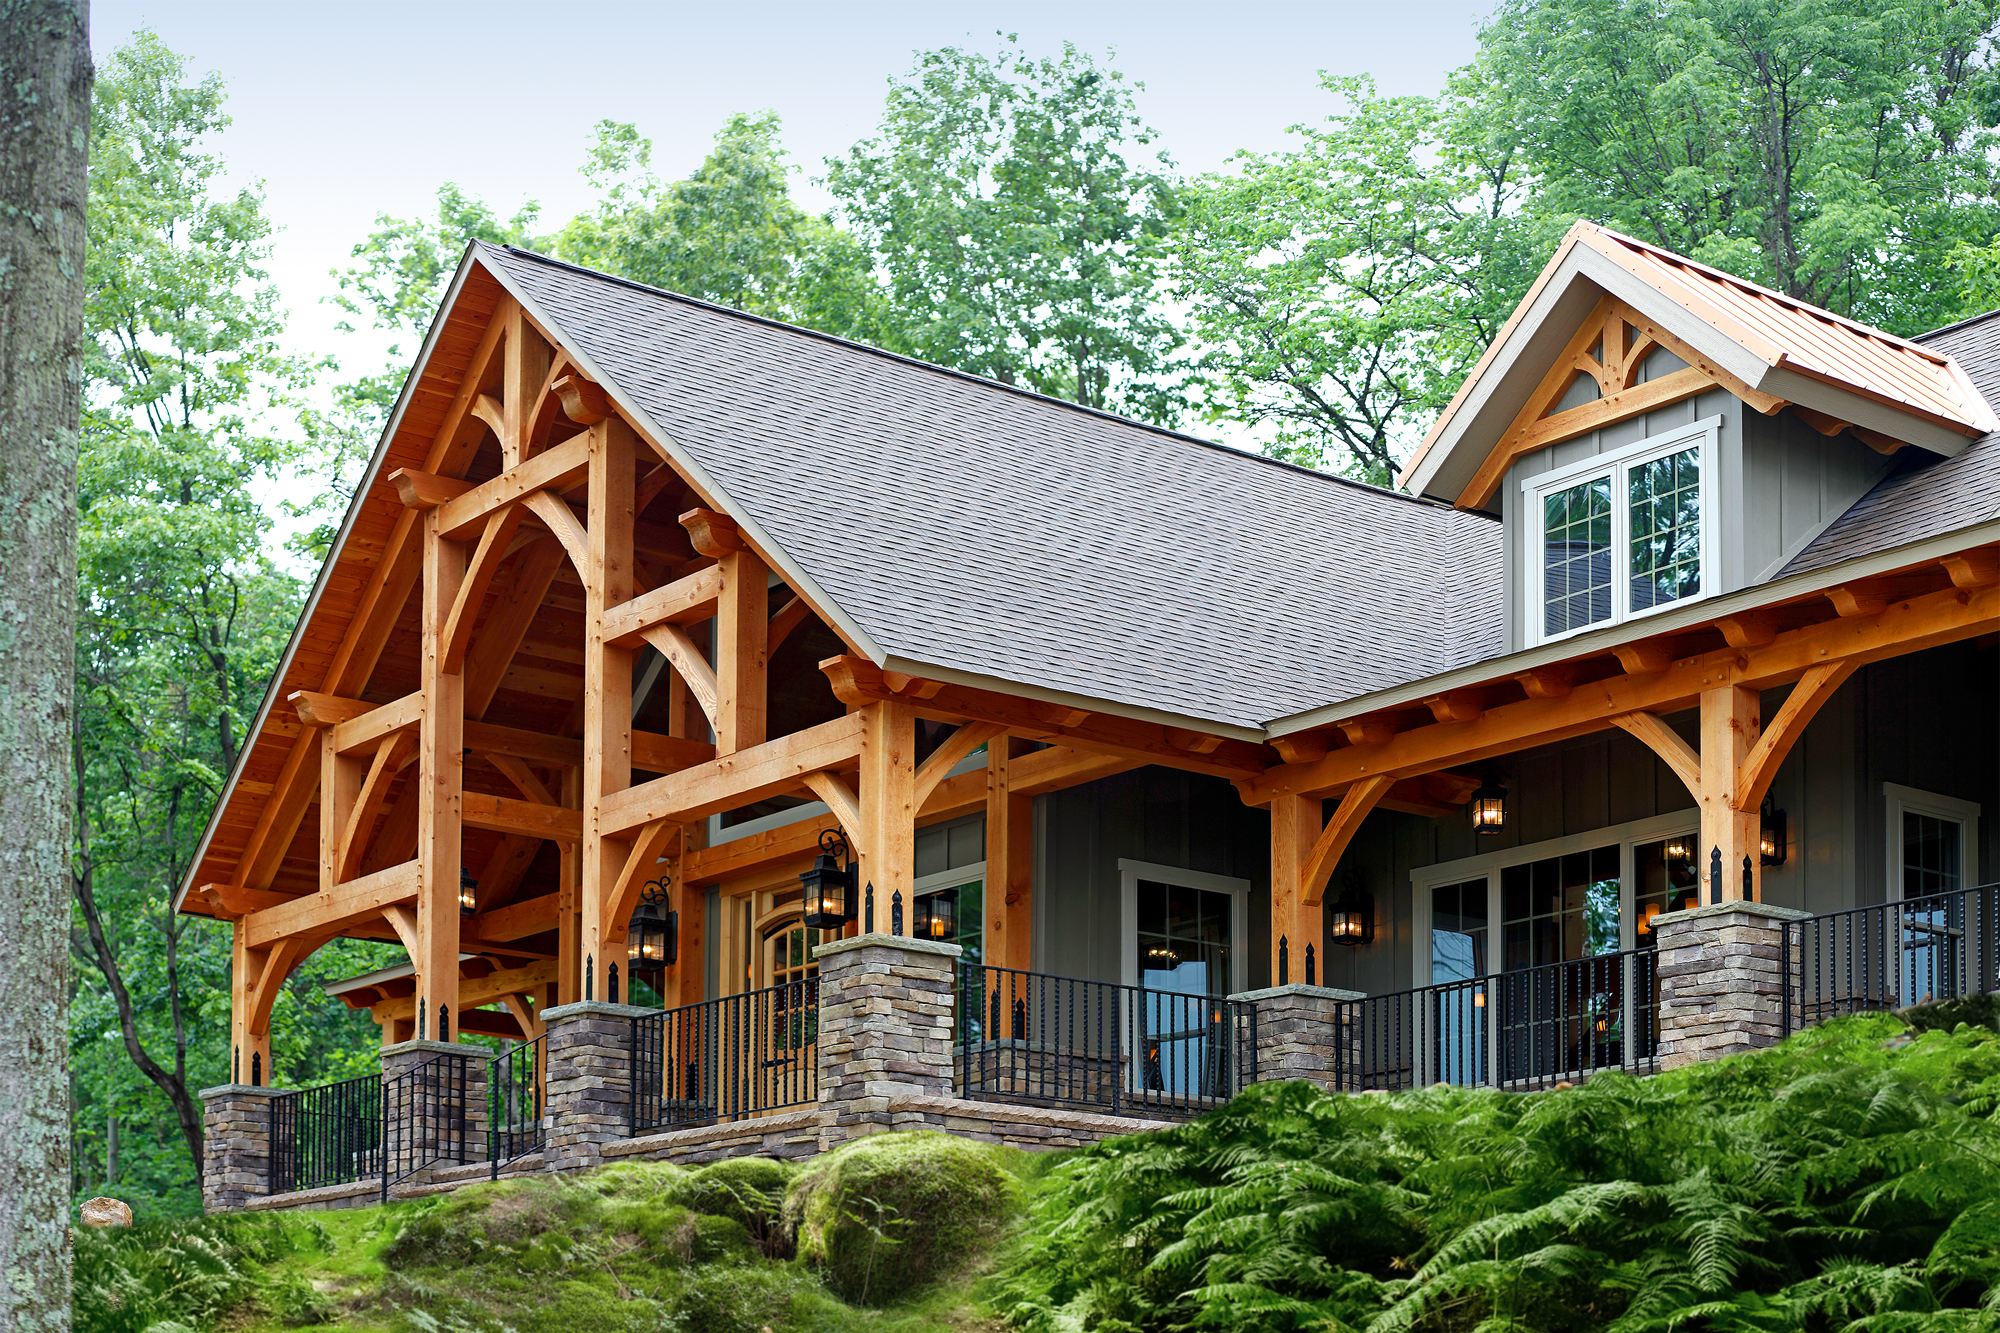 Build An Energy Efficient Timber Frame Home With Sustaility In